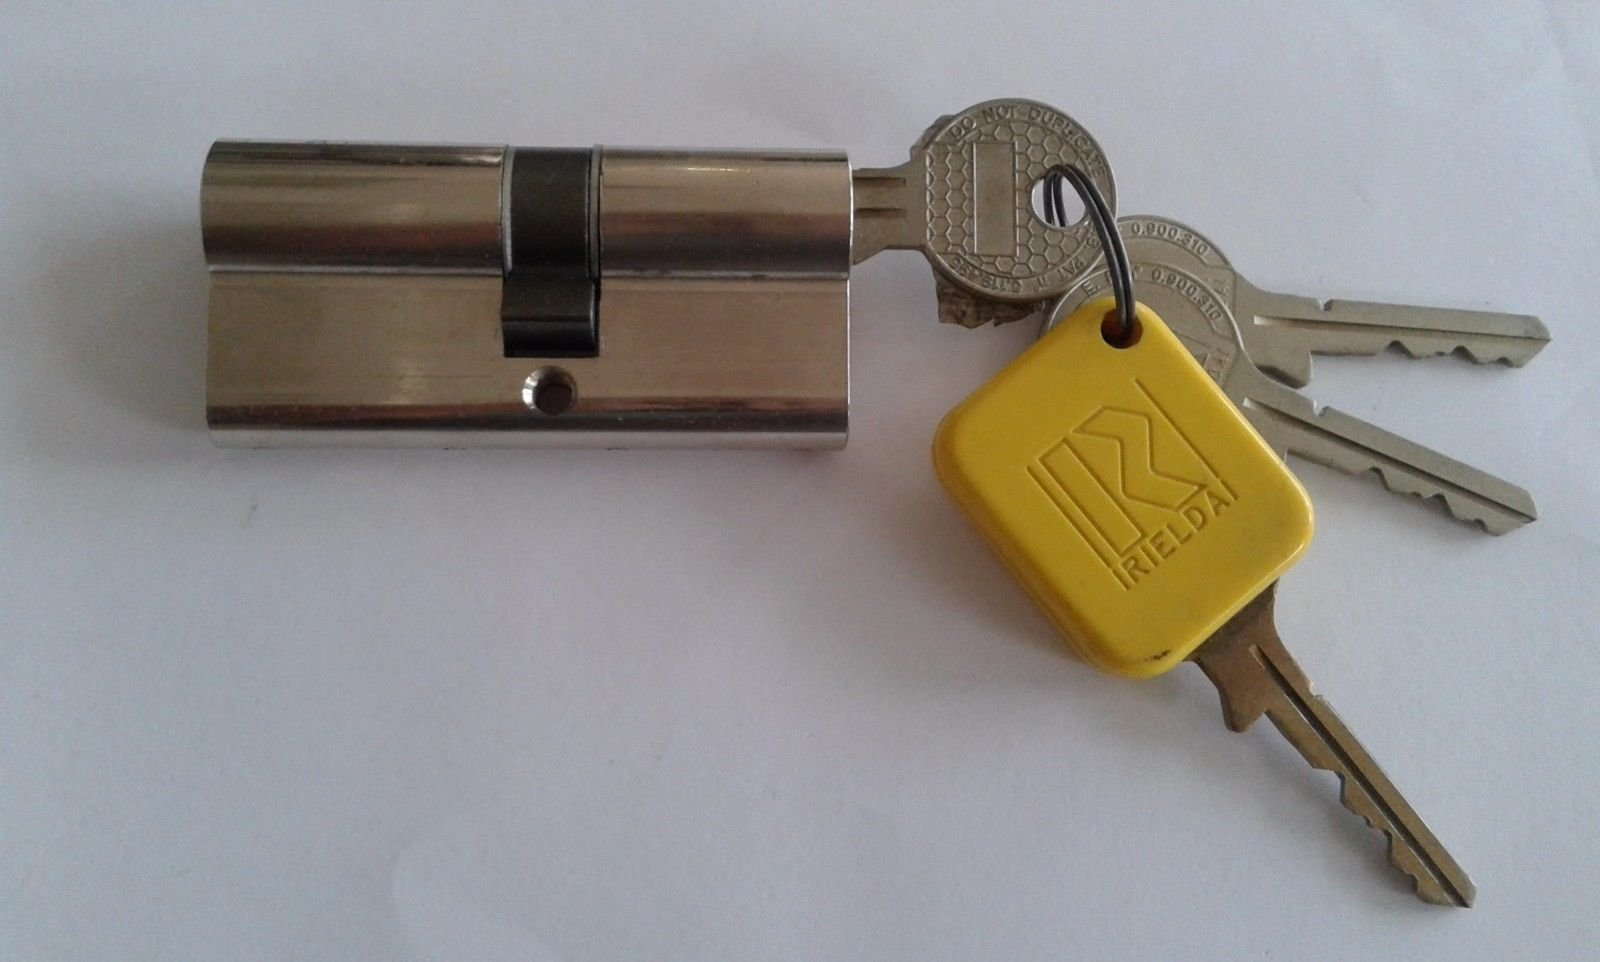 RIELDA 1200S (Italy)High Security Reprogrammable Cylinder Lock With 3 +1 Keys (31/40, Nickel)